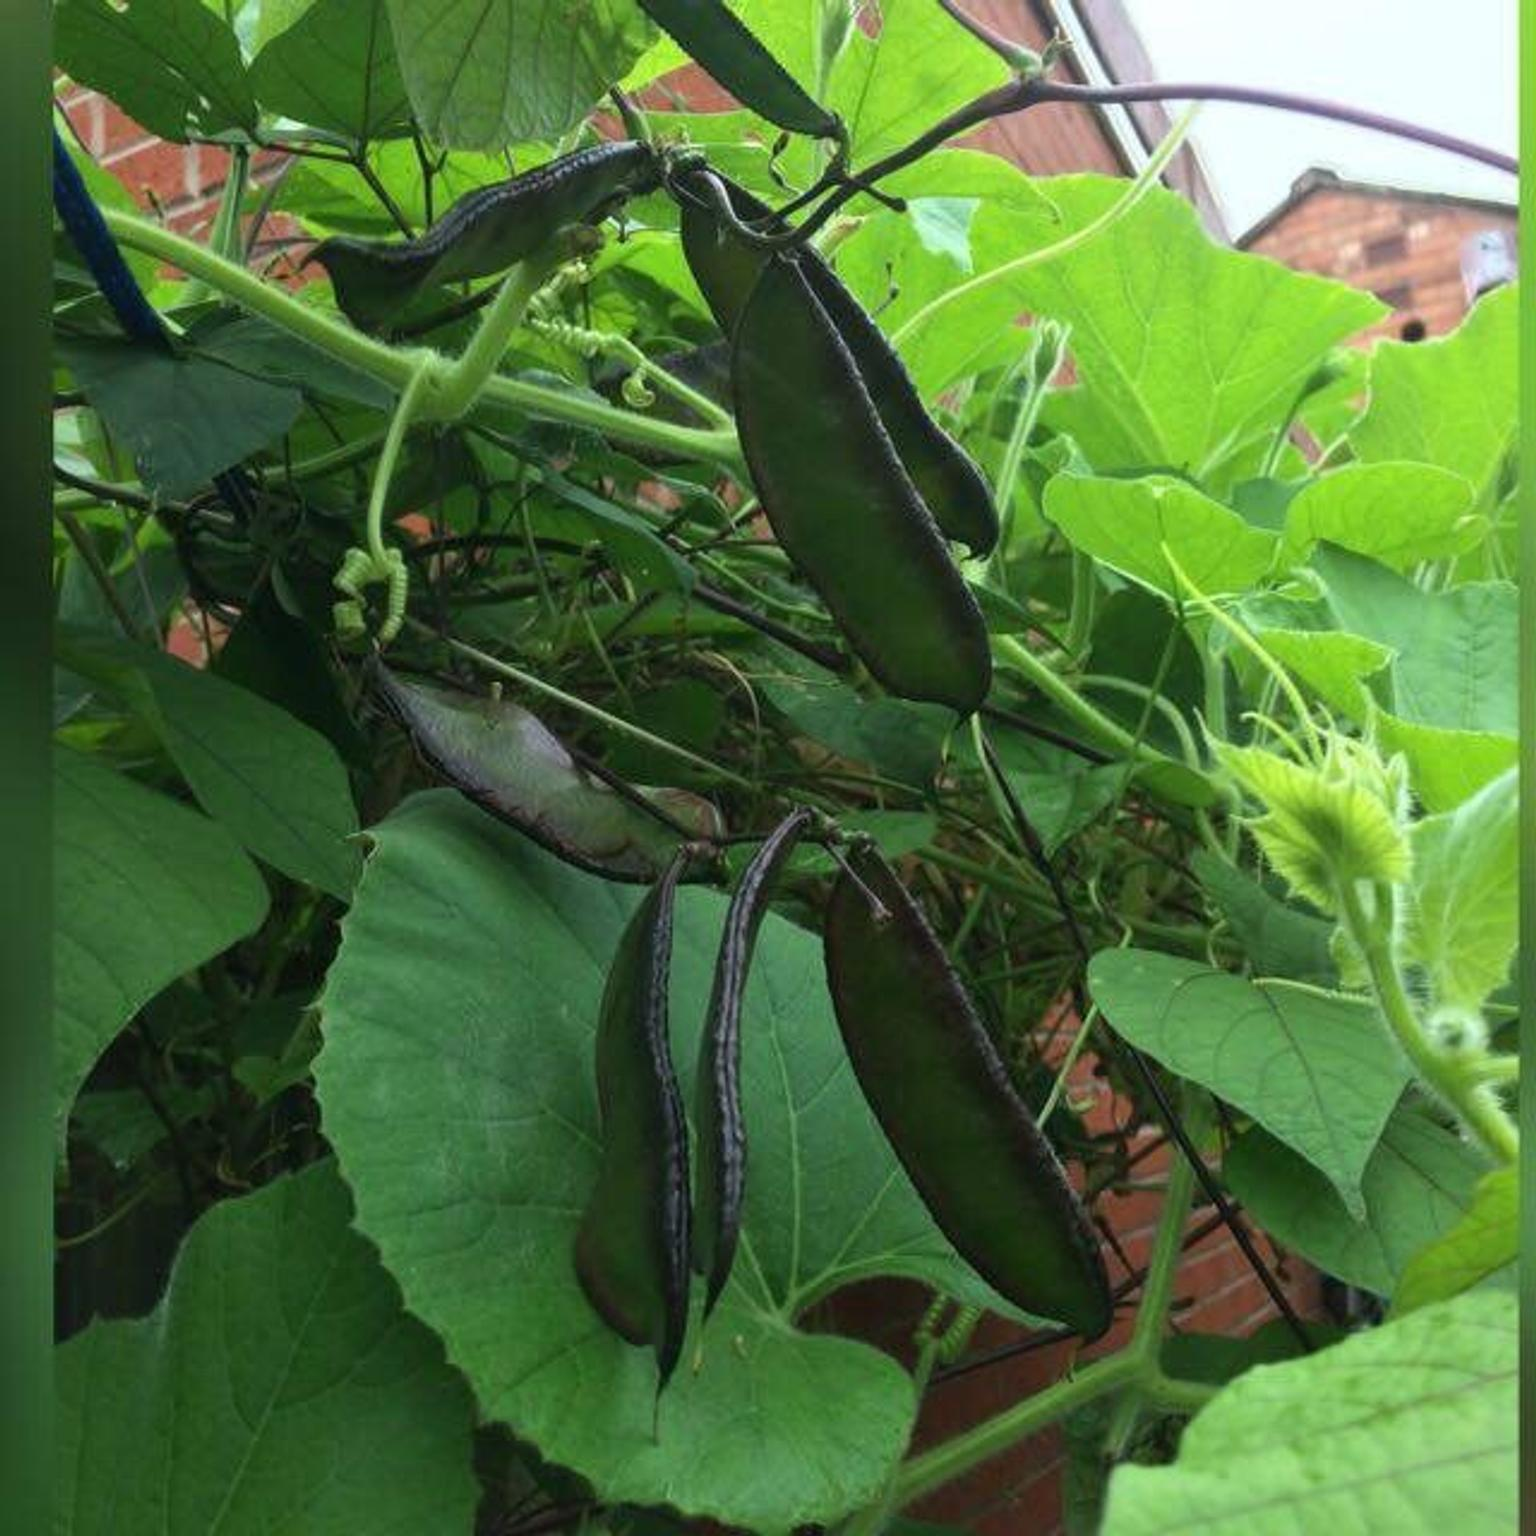 3PCS Winged Bean Seeds Spring Pea Organic Vegetable Home Garden Green Plant Seed